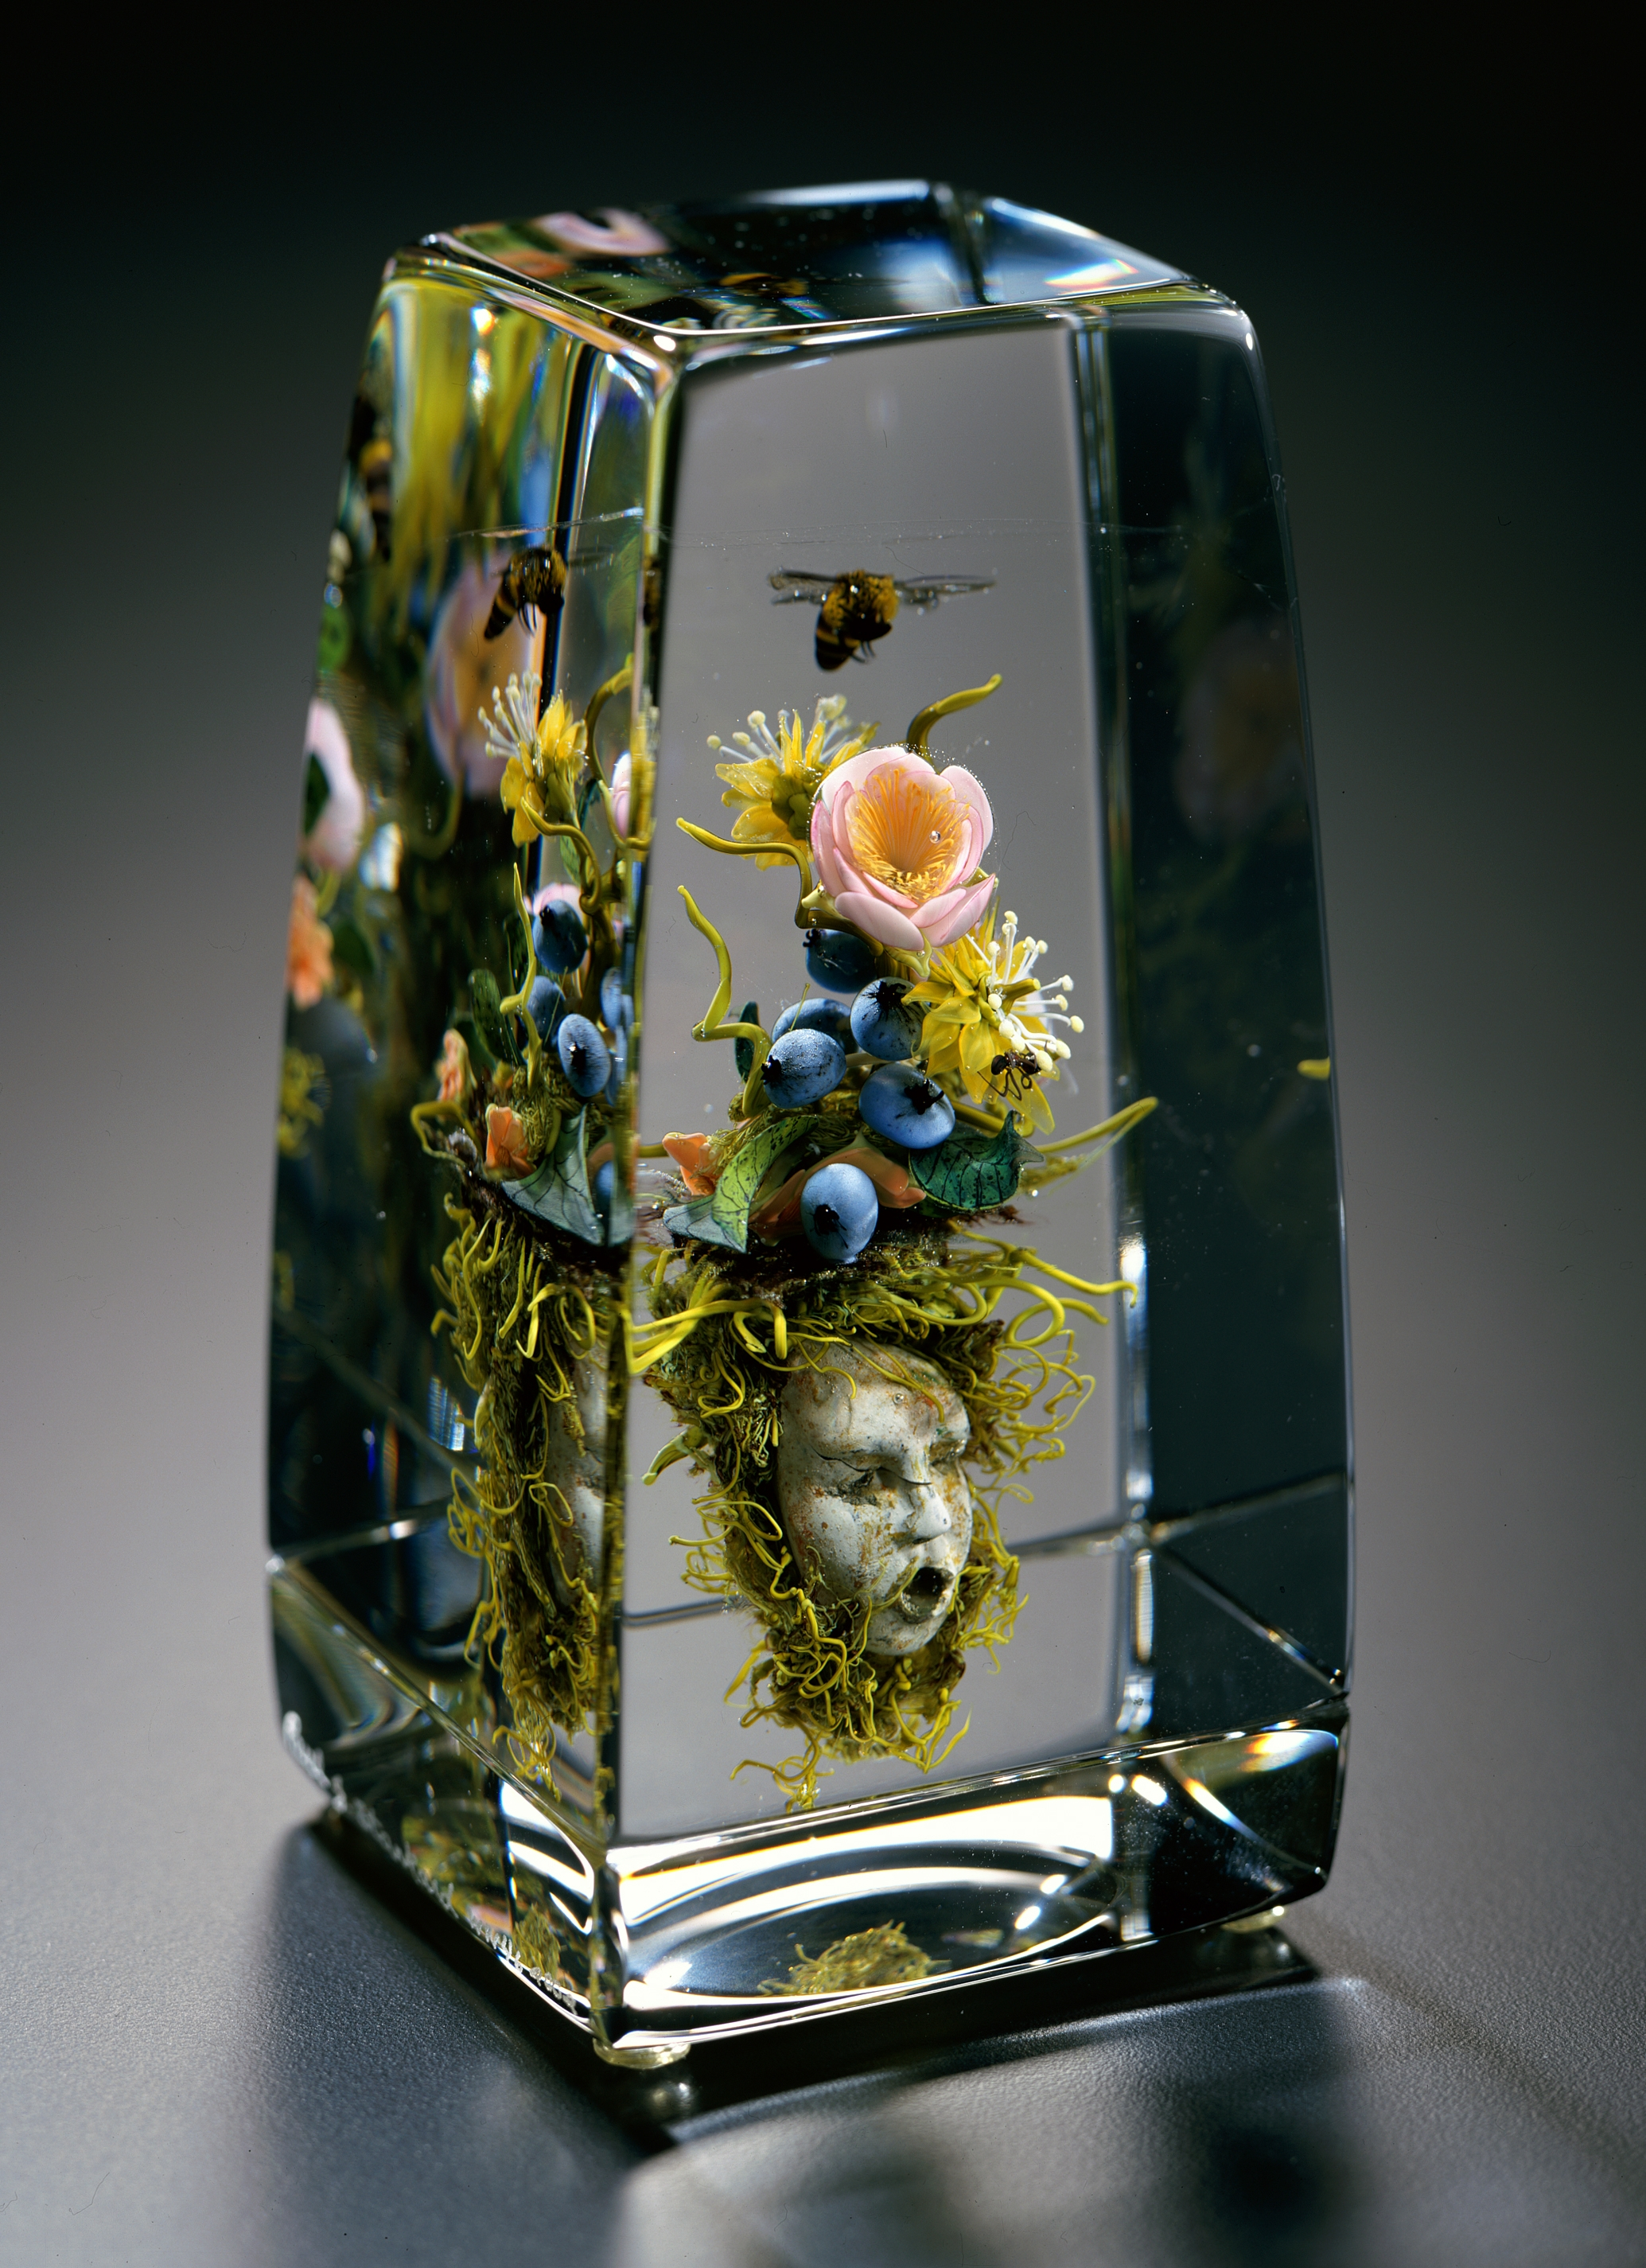 2004; Tea Rose Bouquet with Mask; H. 5.5 inches